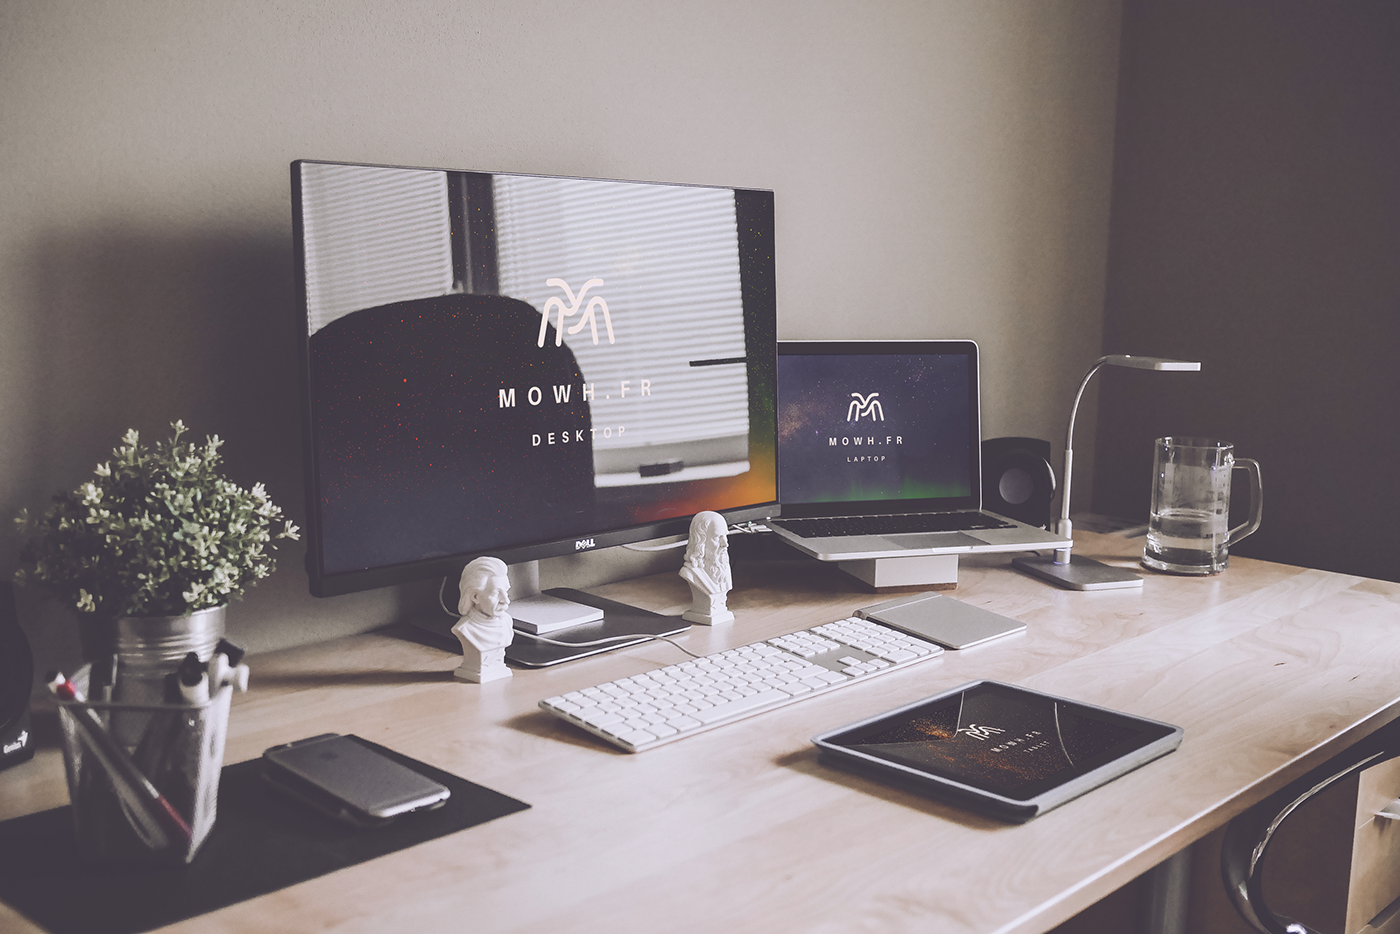 Mockup,macbook,dell,screen,iPad,tablet,Laptop,monitor,realistic